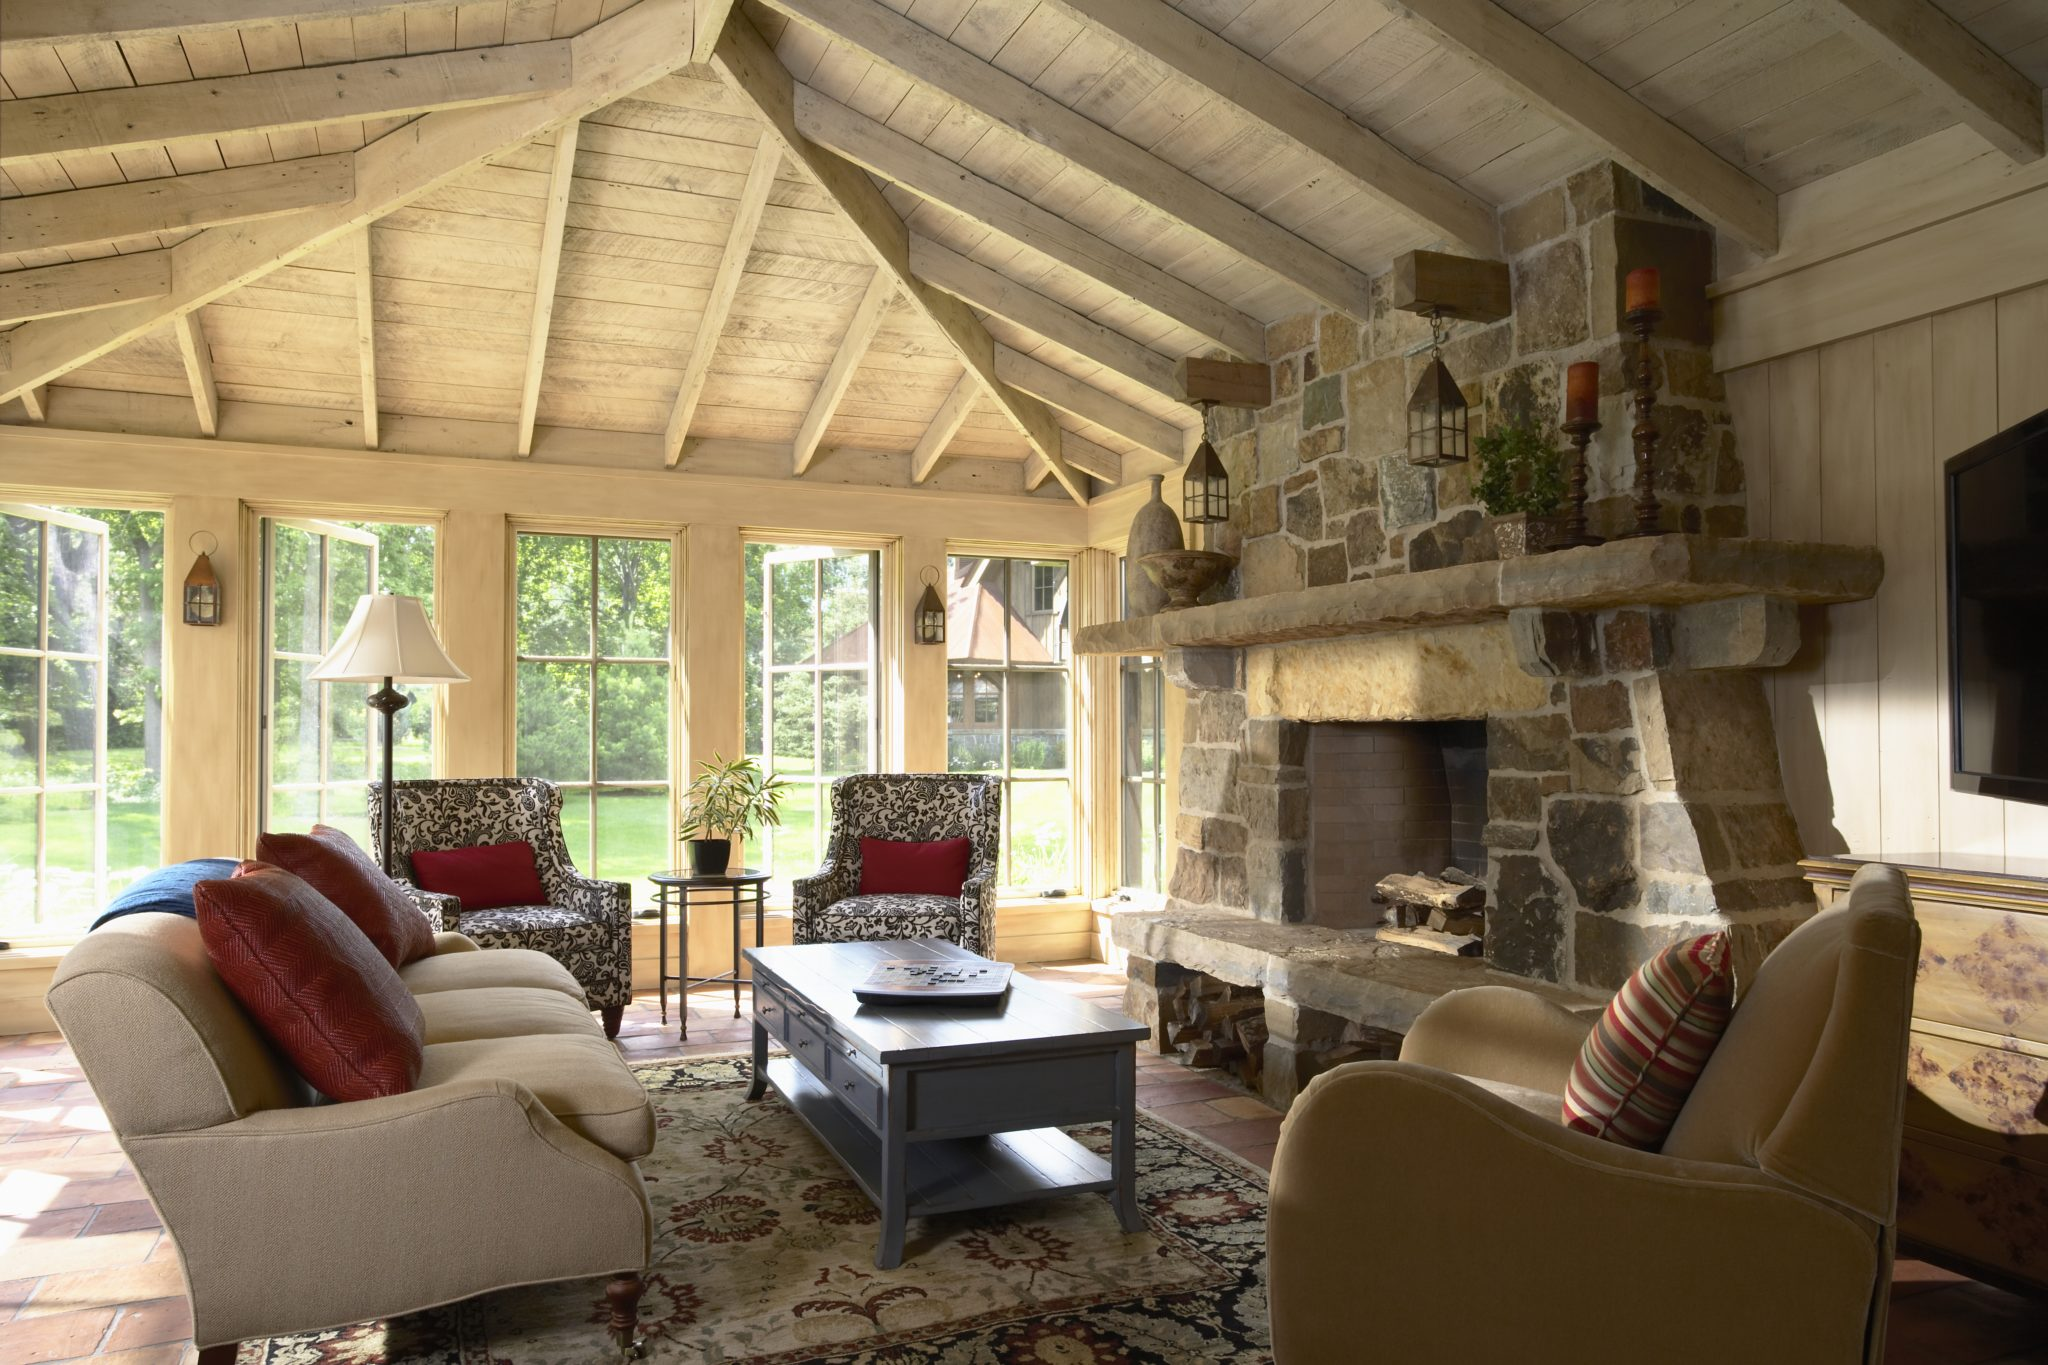 38 Inspiring Spaces With Natural Materials Chairish Blog